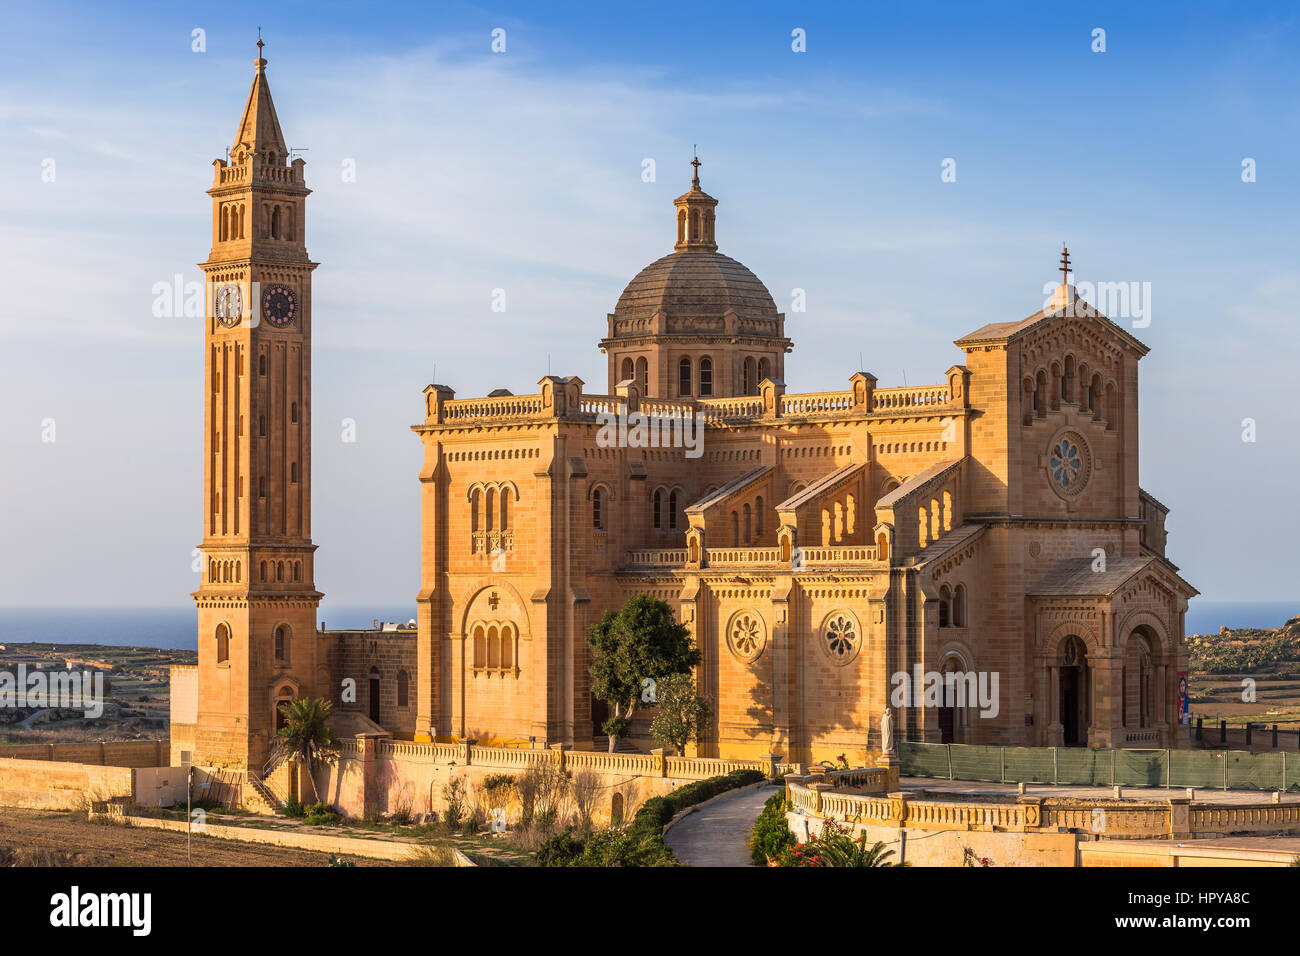 Gozo, Malta - The Basilica of the National Shrine of the Blessed Virgin of Ta' Pinu at sunset with clear blue - Stock Image